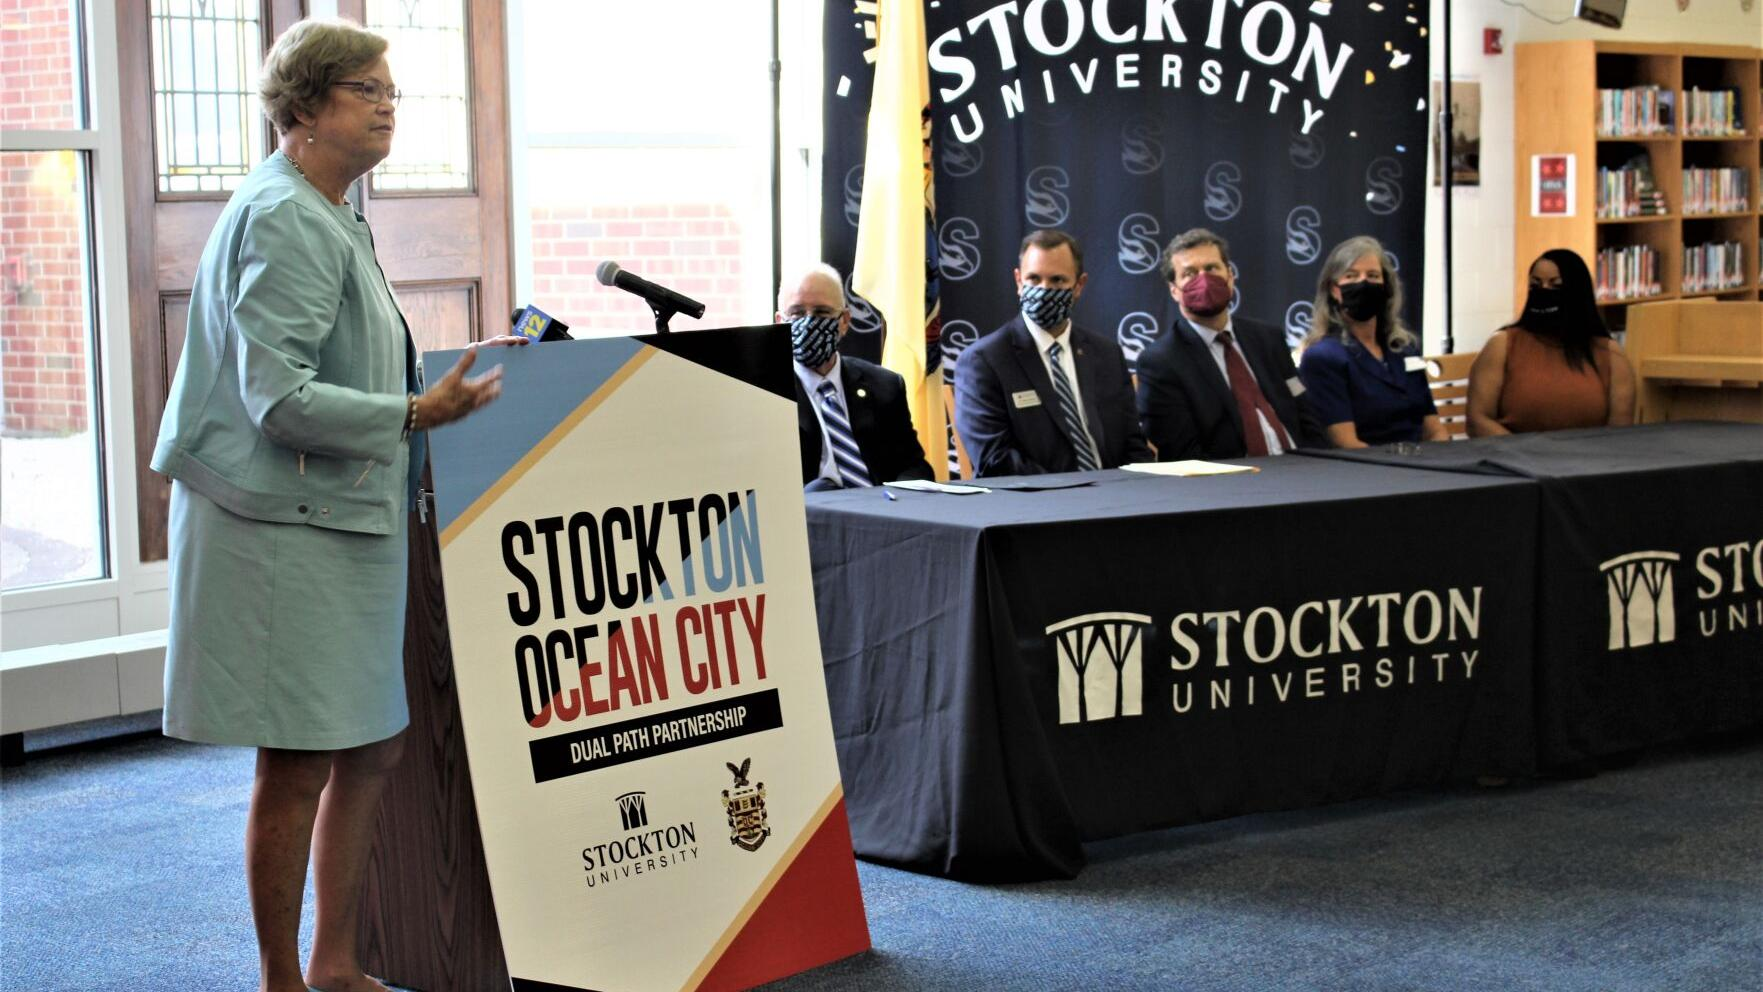 Ocean City, Stockton agreement paves way for students to graduate both in six years